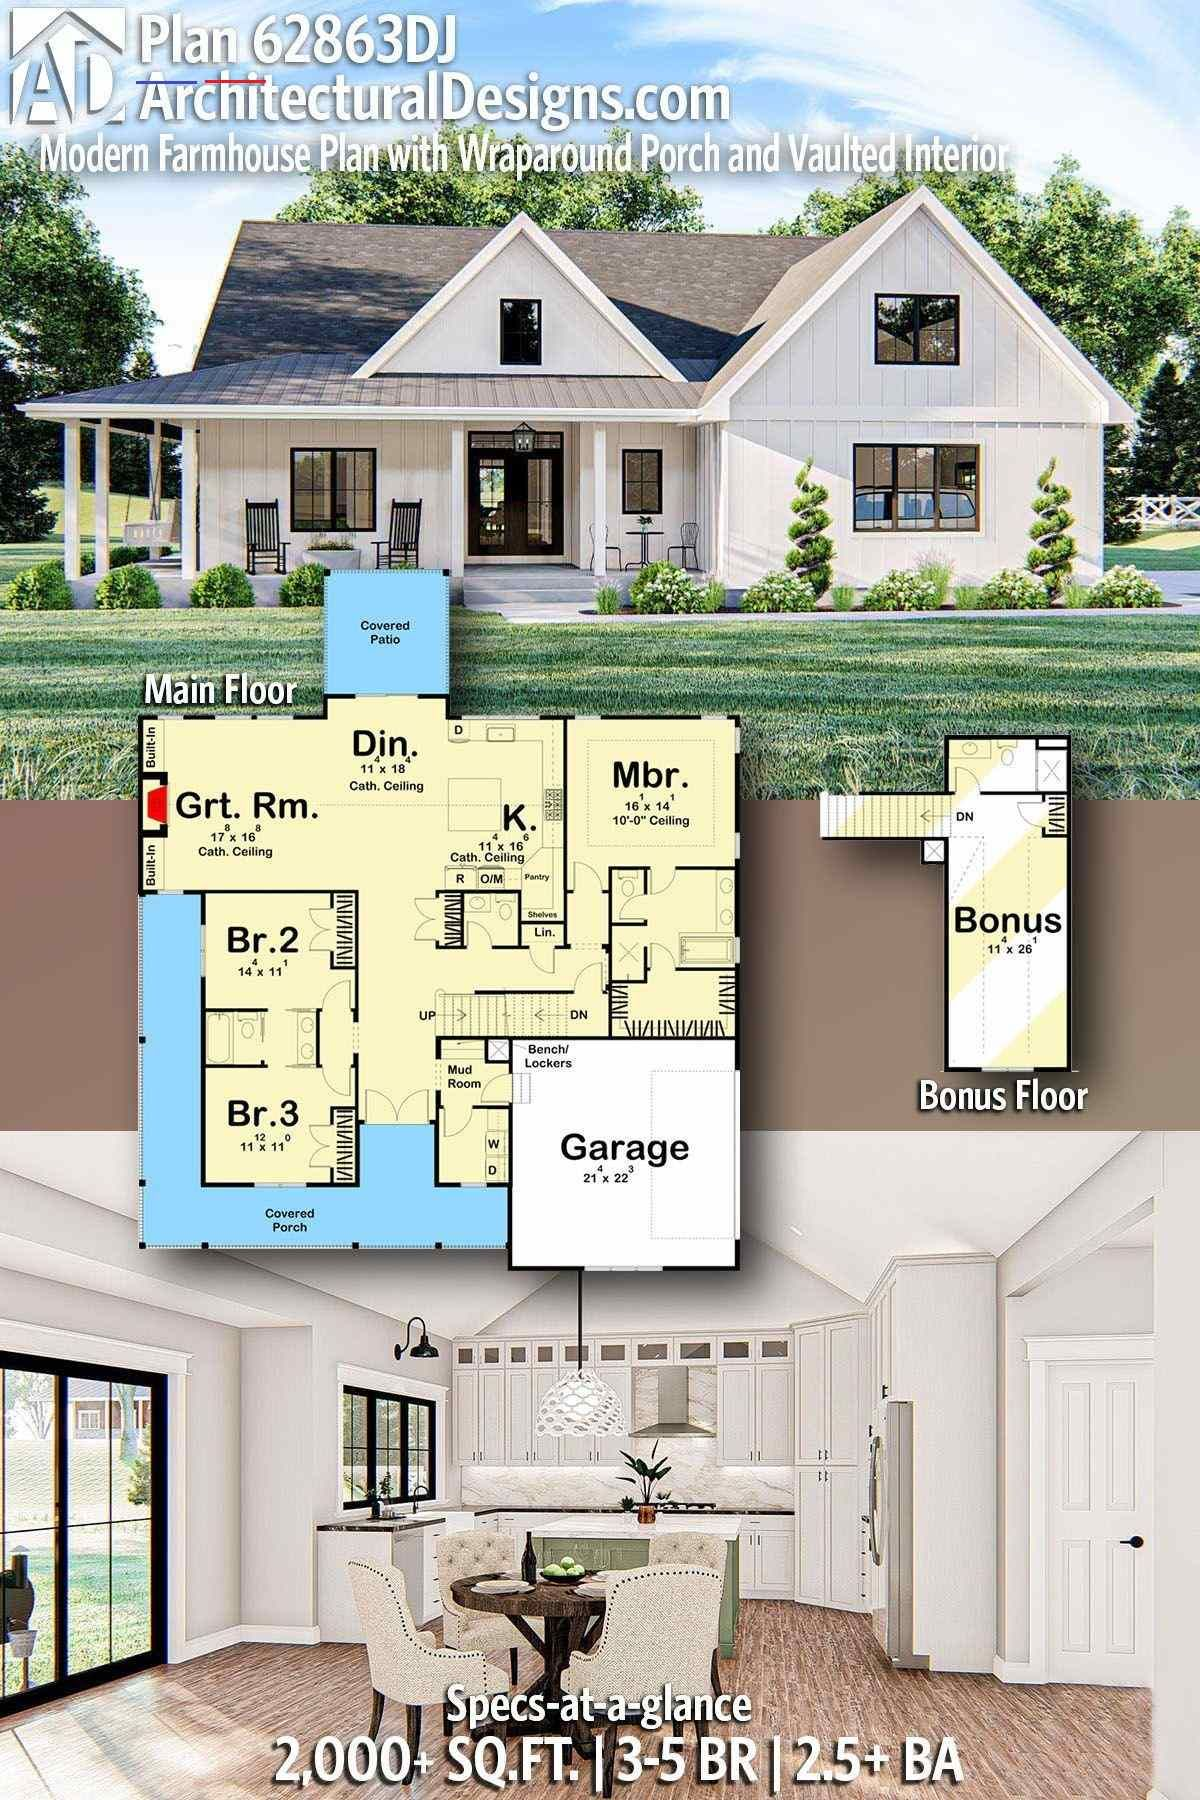 Smallmodernfarmhouseplans Small Farmhouse Plans Modern Farmhouse Plans House Plans Farmhouse